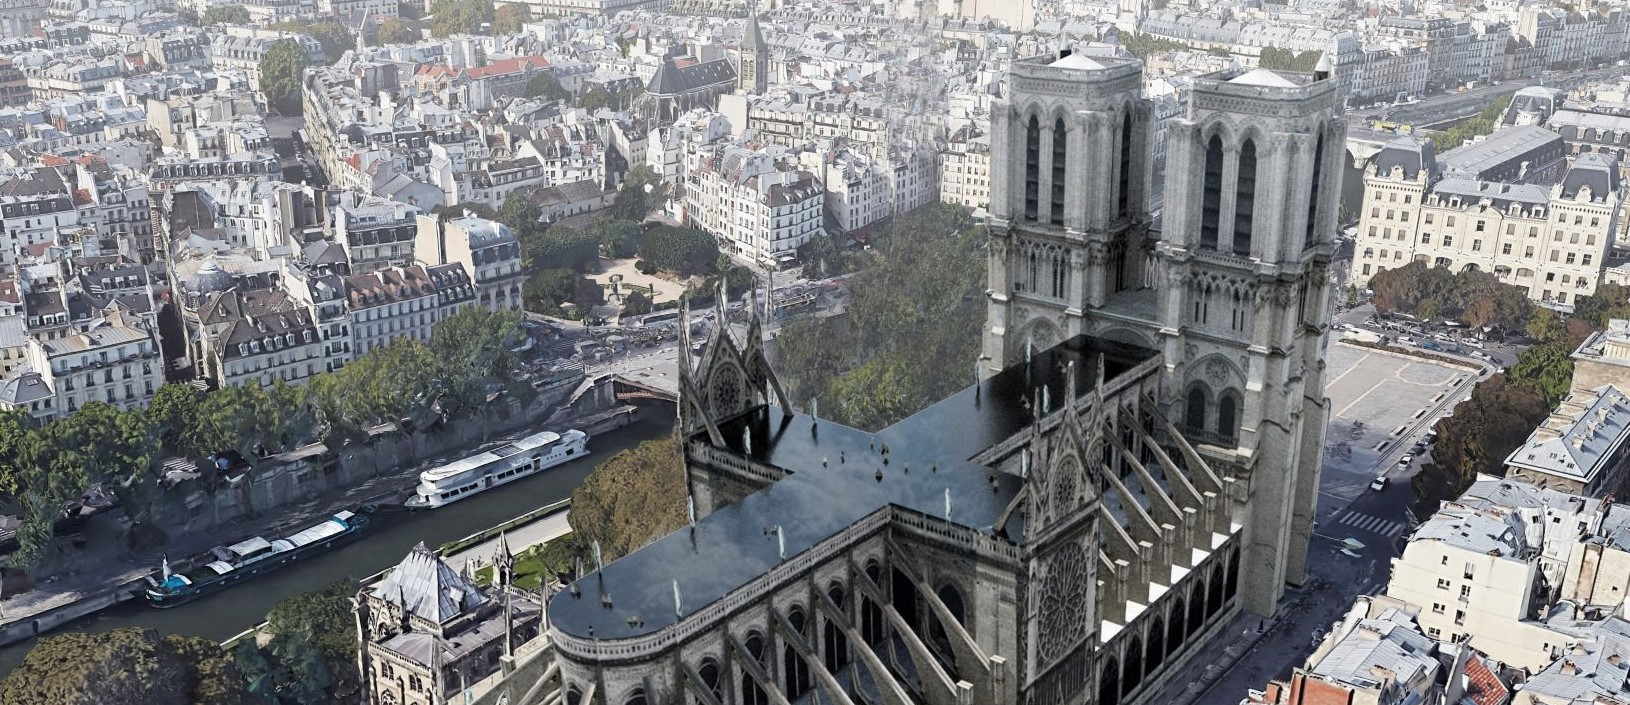 Comment Faire Un Petit Pont 5 thought-provoking proposed modern designs for notre dame